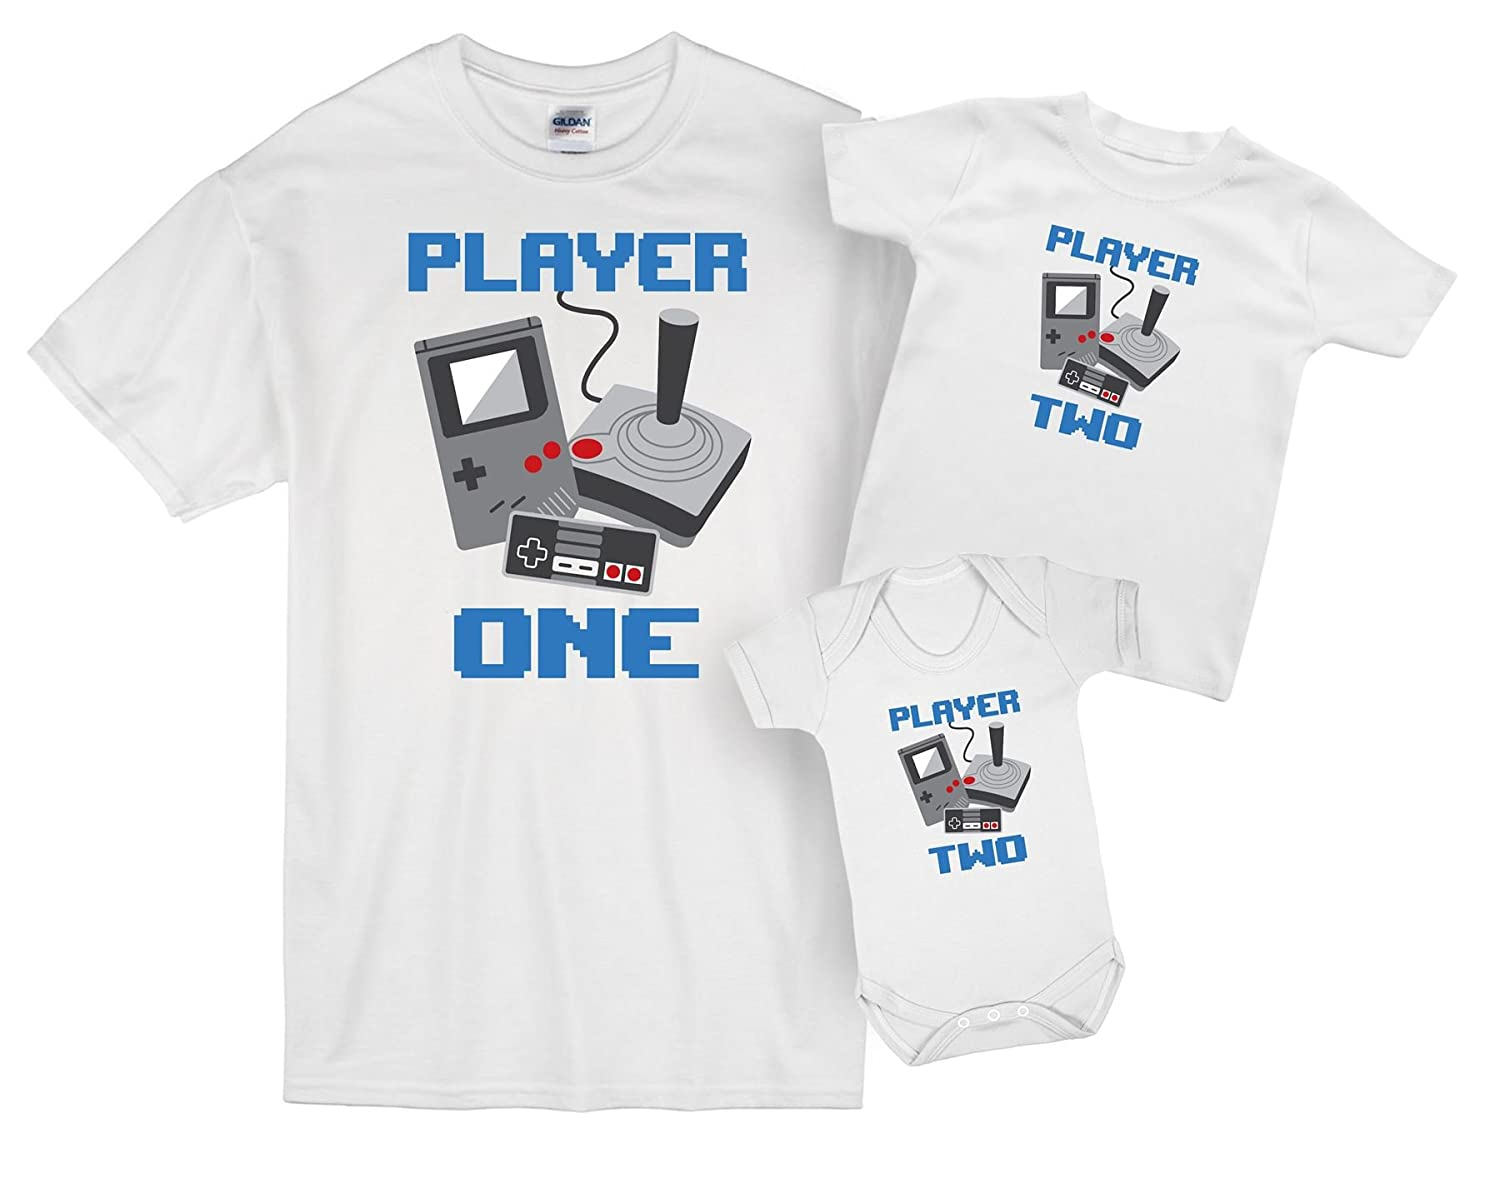 ART HUSTLE Retro Player One and Player Two Father and Baby Matching Outfits